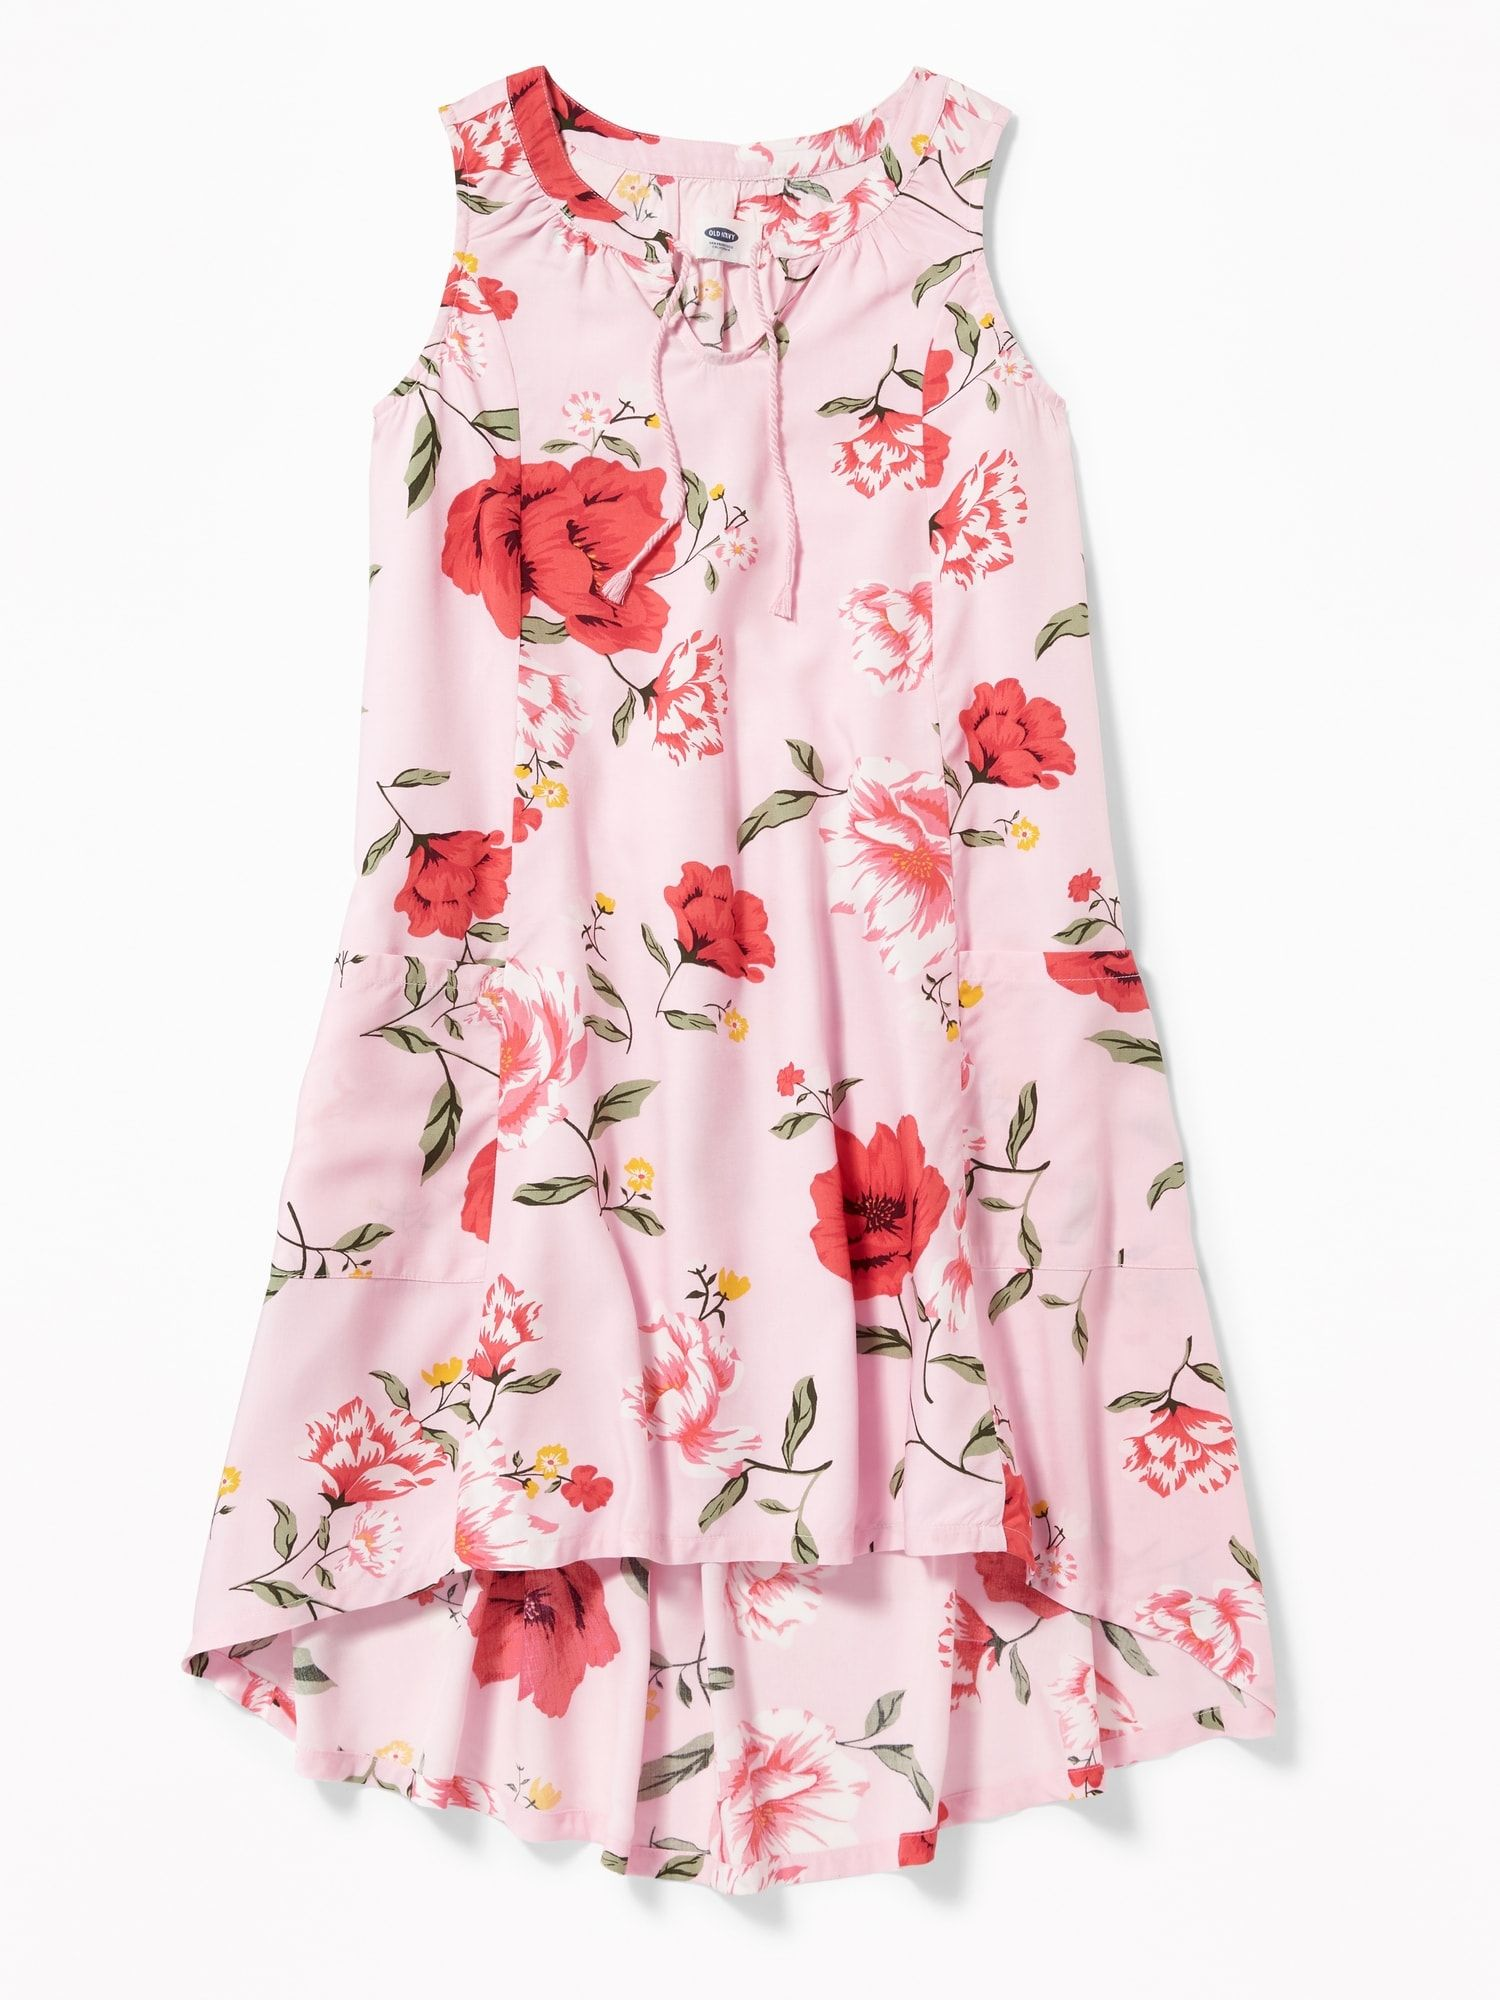 Sleeveless Floral Hi Lo Dress For Girls Old Navy Dresses Girls Dresses Online Girls Dresses